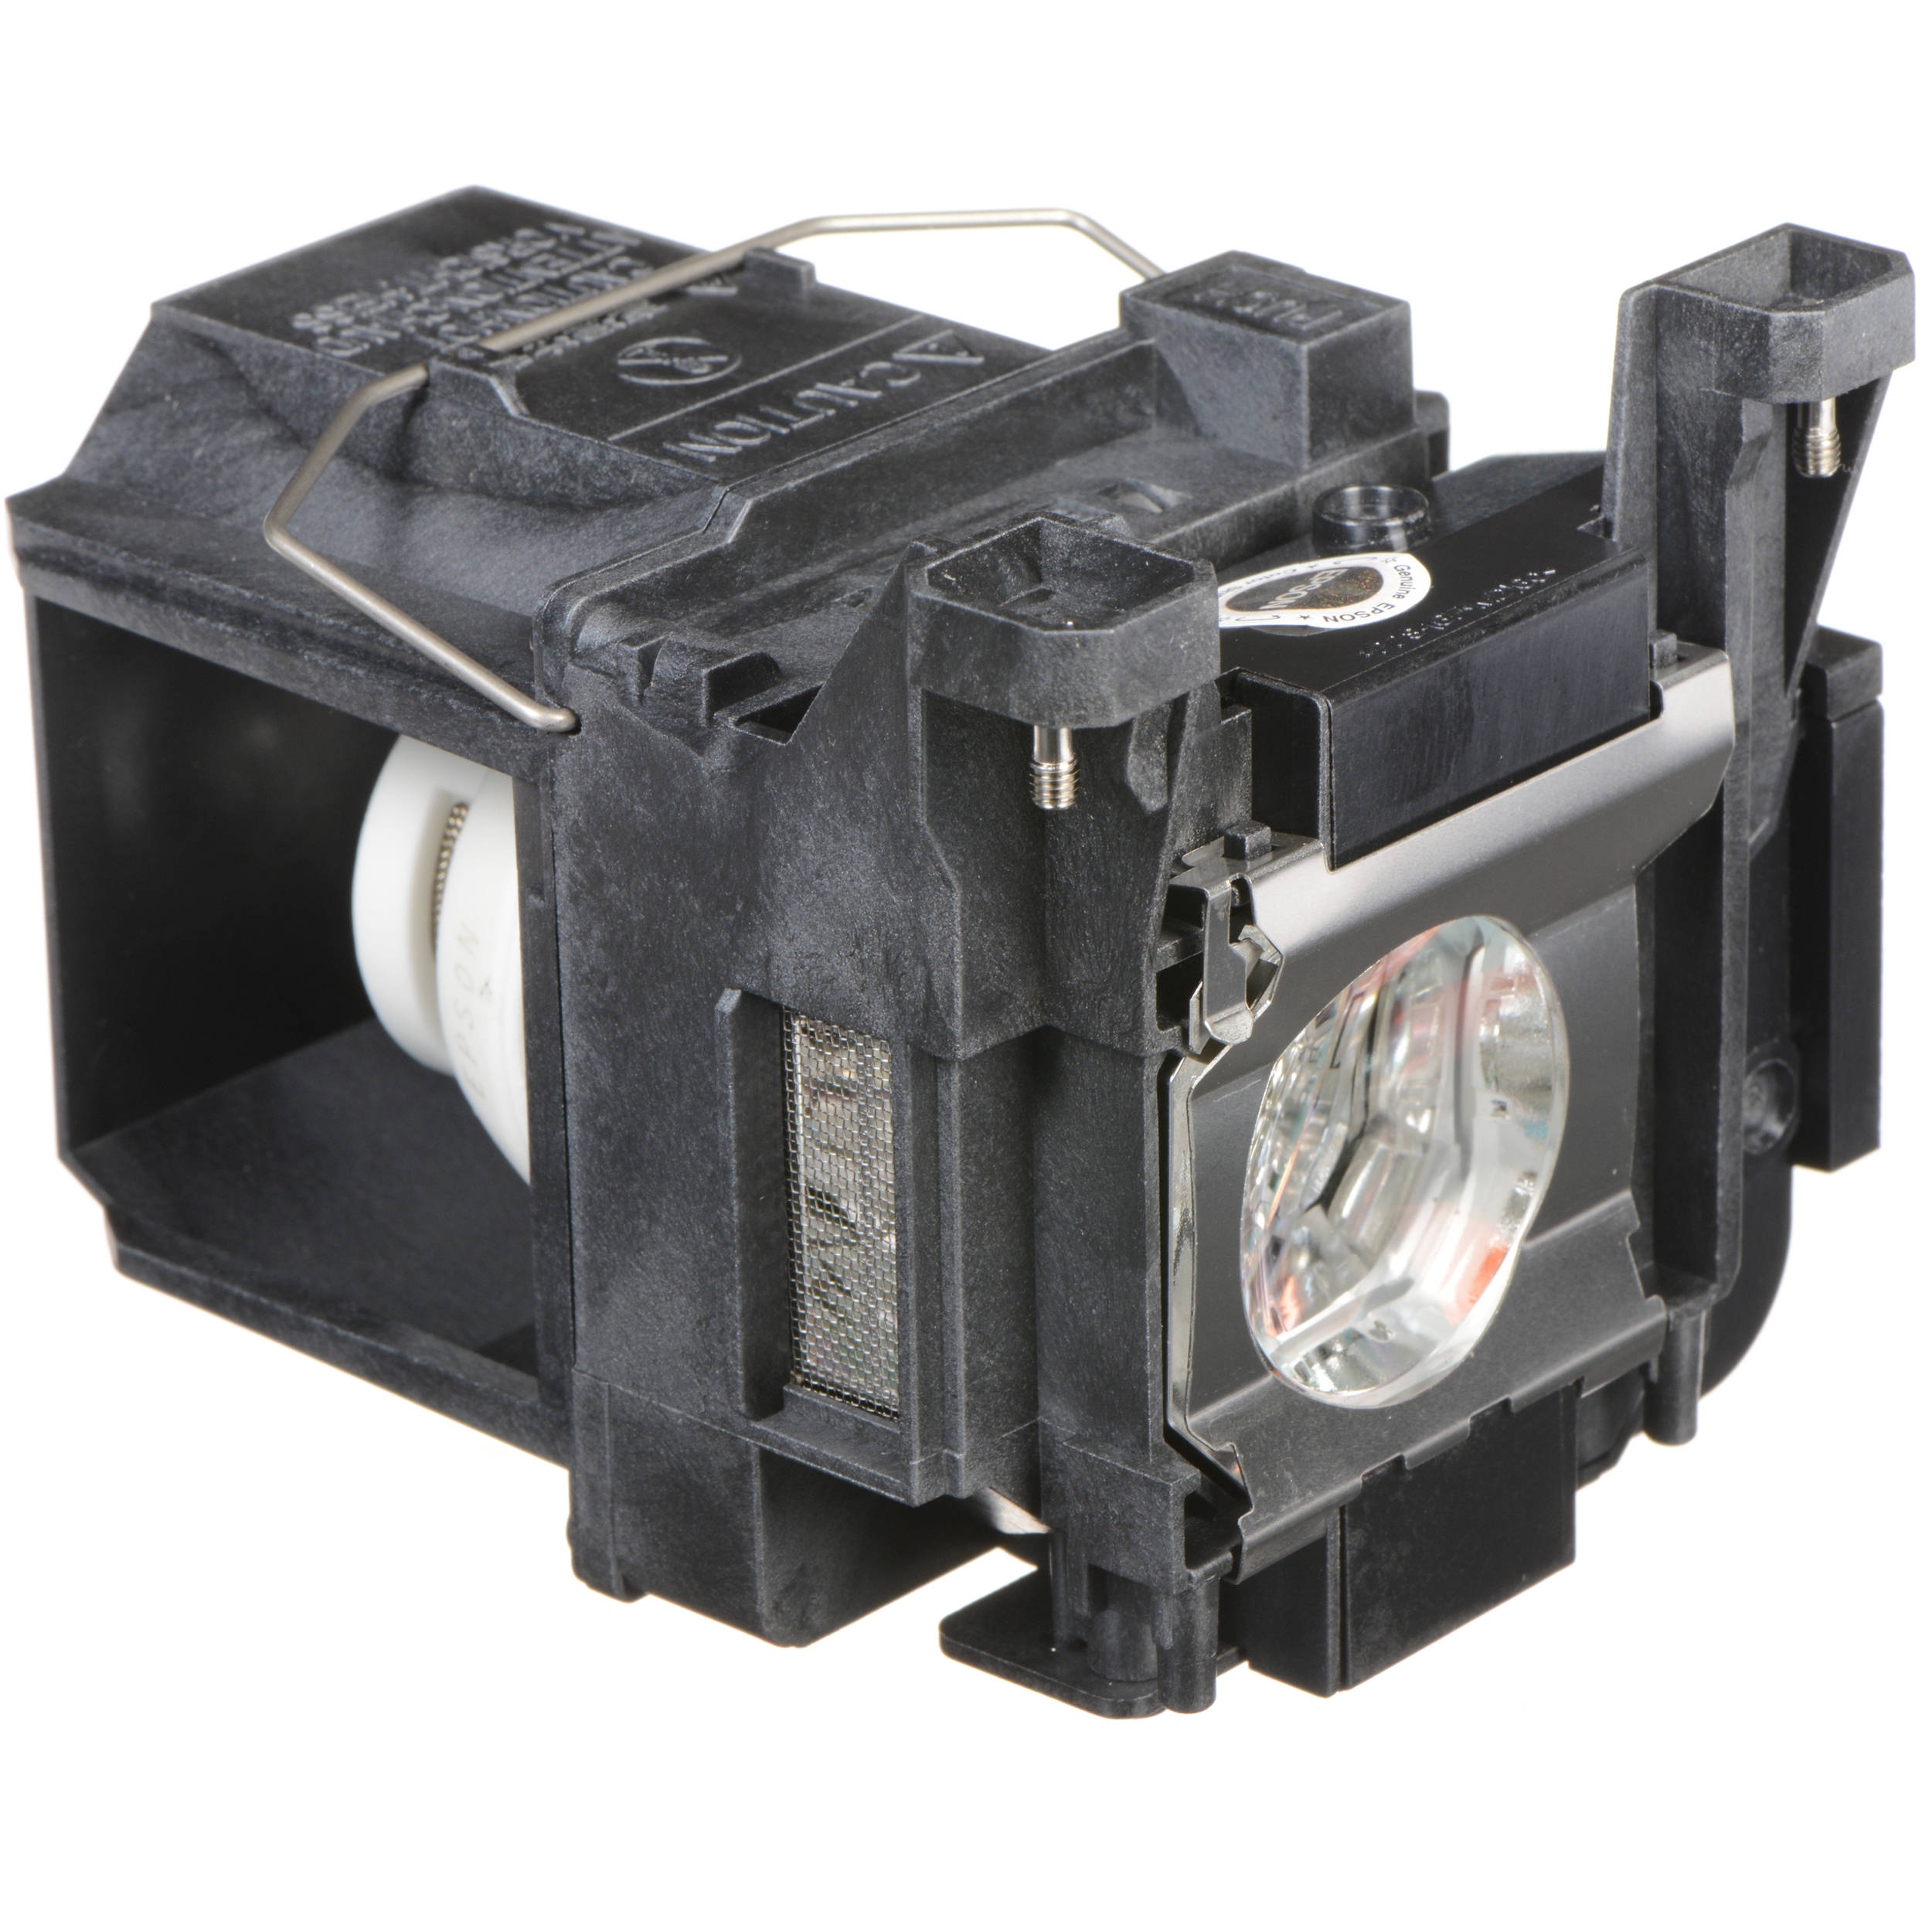 Epson ELPLP89 Replacement Projector Lamp V13H010L89 B